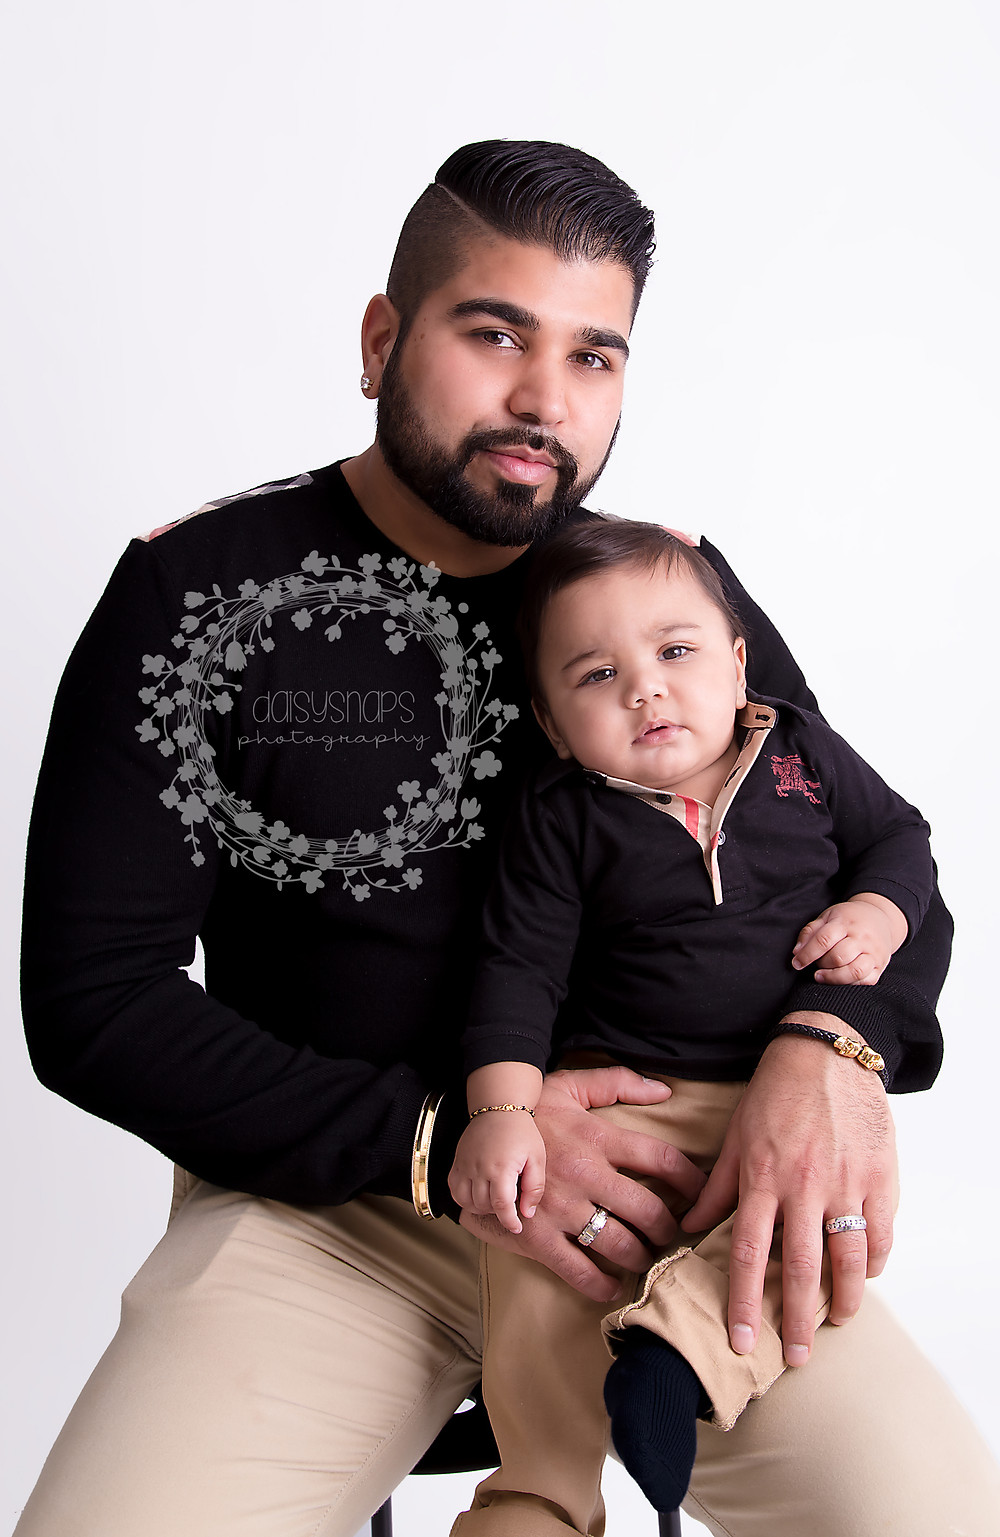 father and son family portrait with baby sitting on dad's lap looking at the photographer